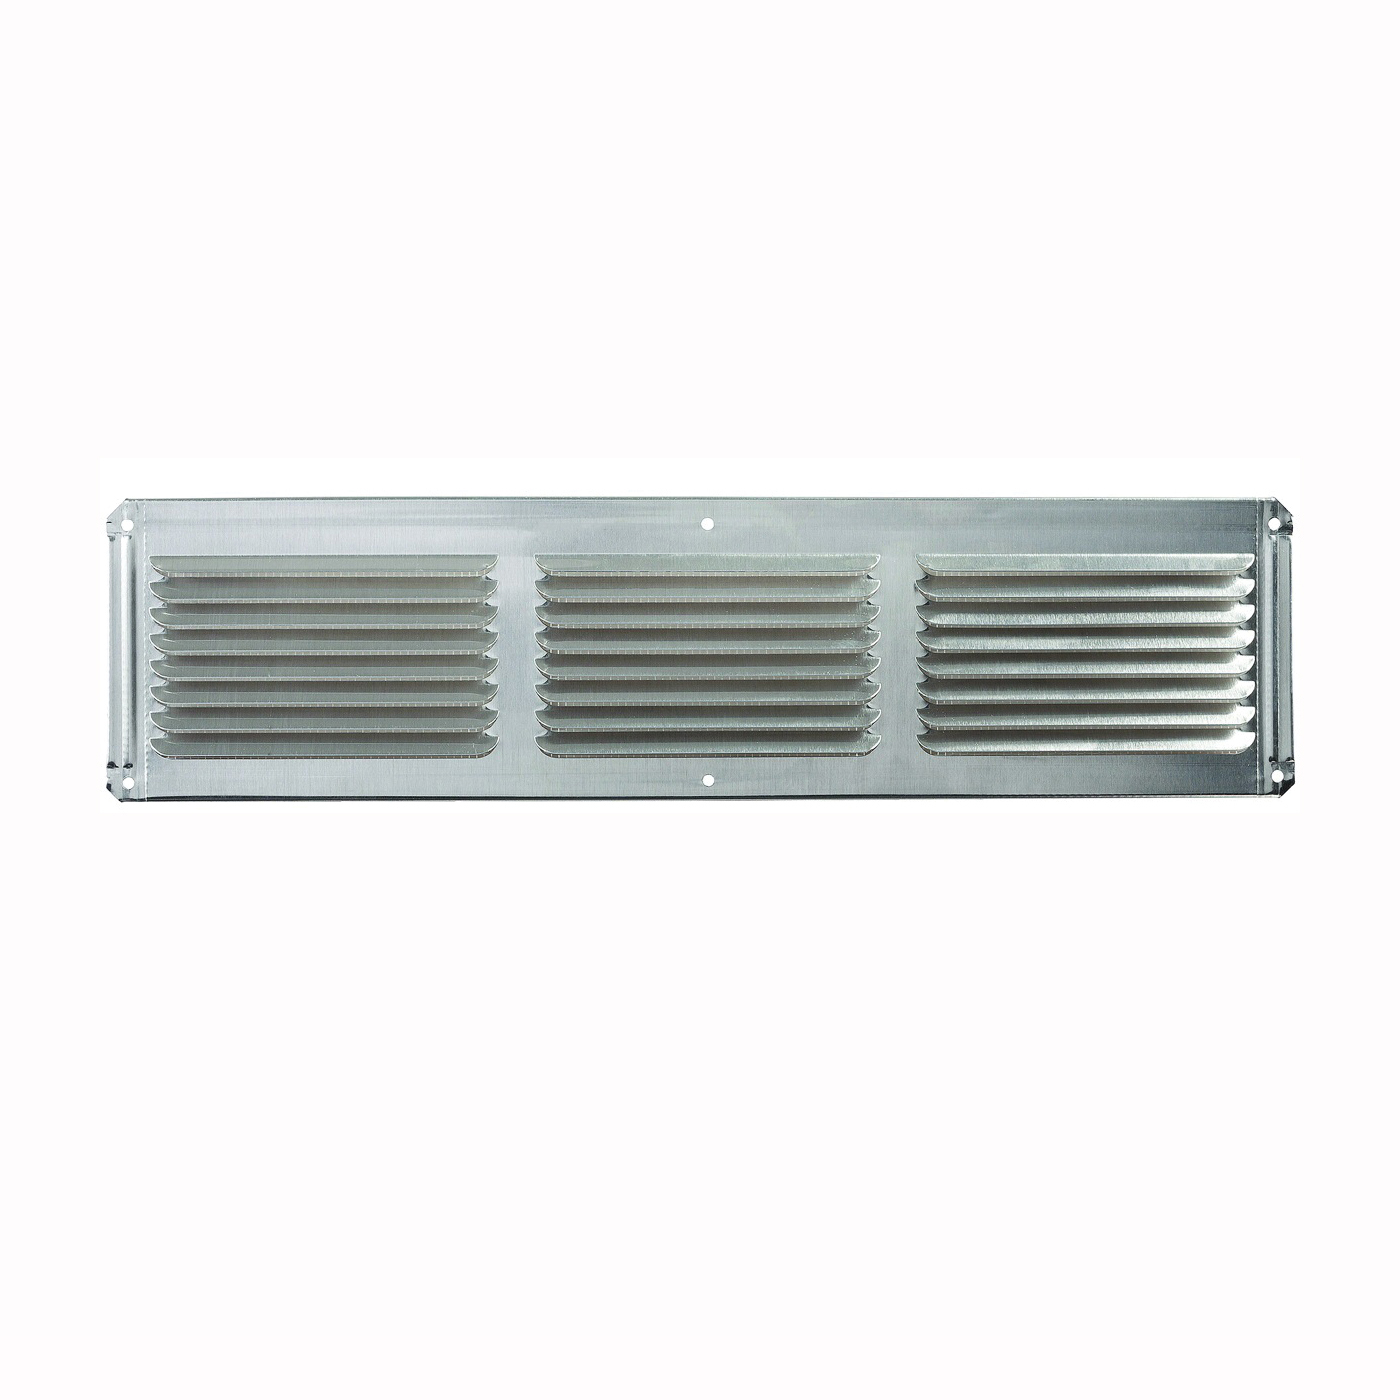 Picture of Master Flow EAC16X4 Undereave Vent, 4 in L, 16 in W, 26 sq-ft Net Free Ventilating Area, Aluminum, Mill